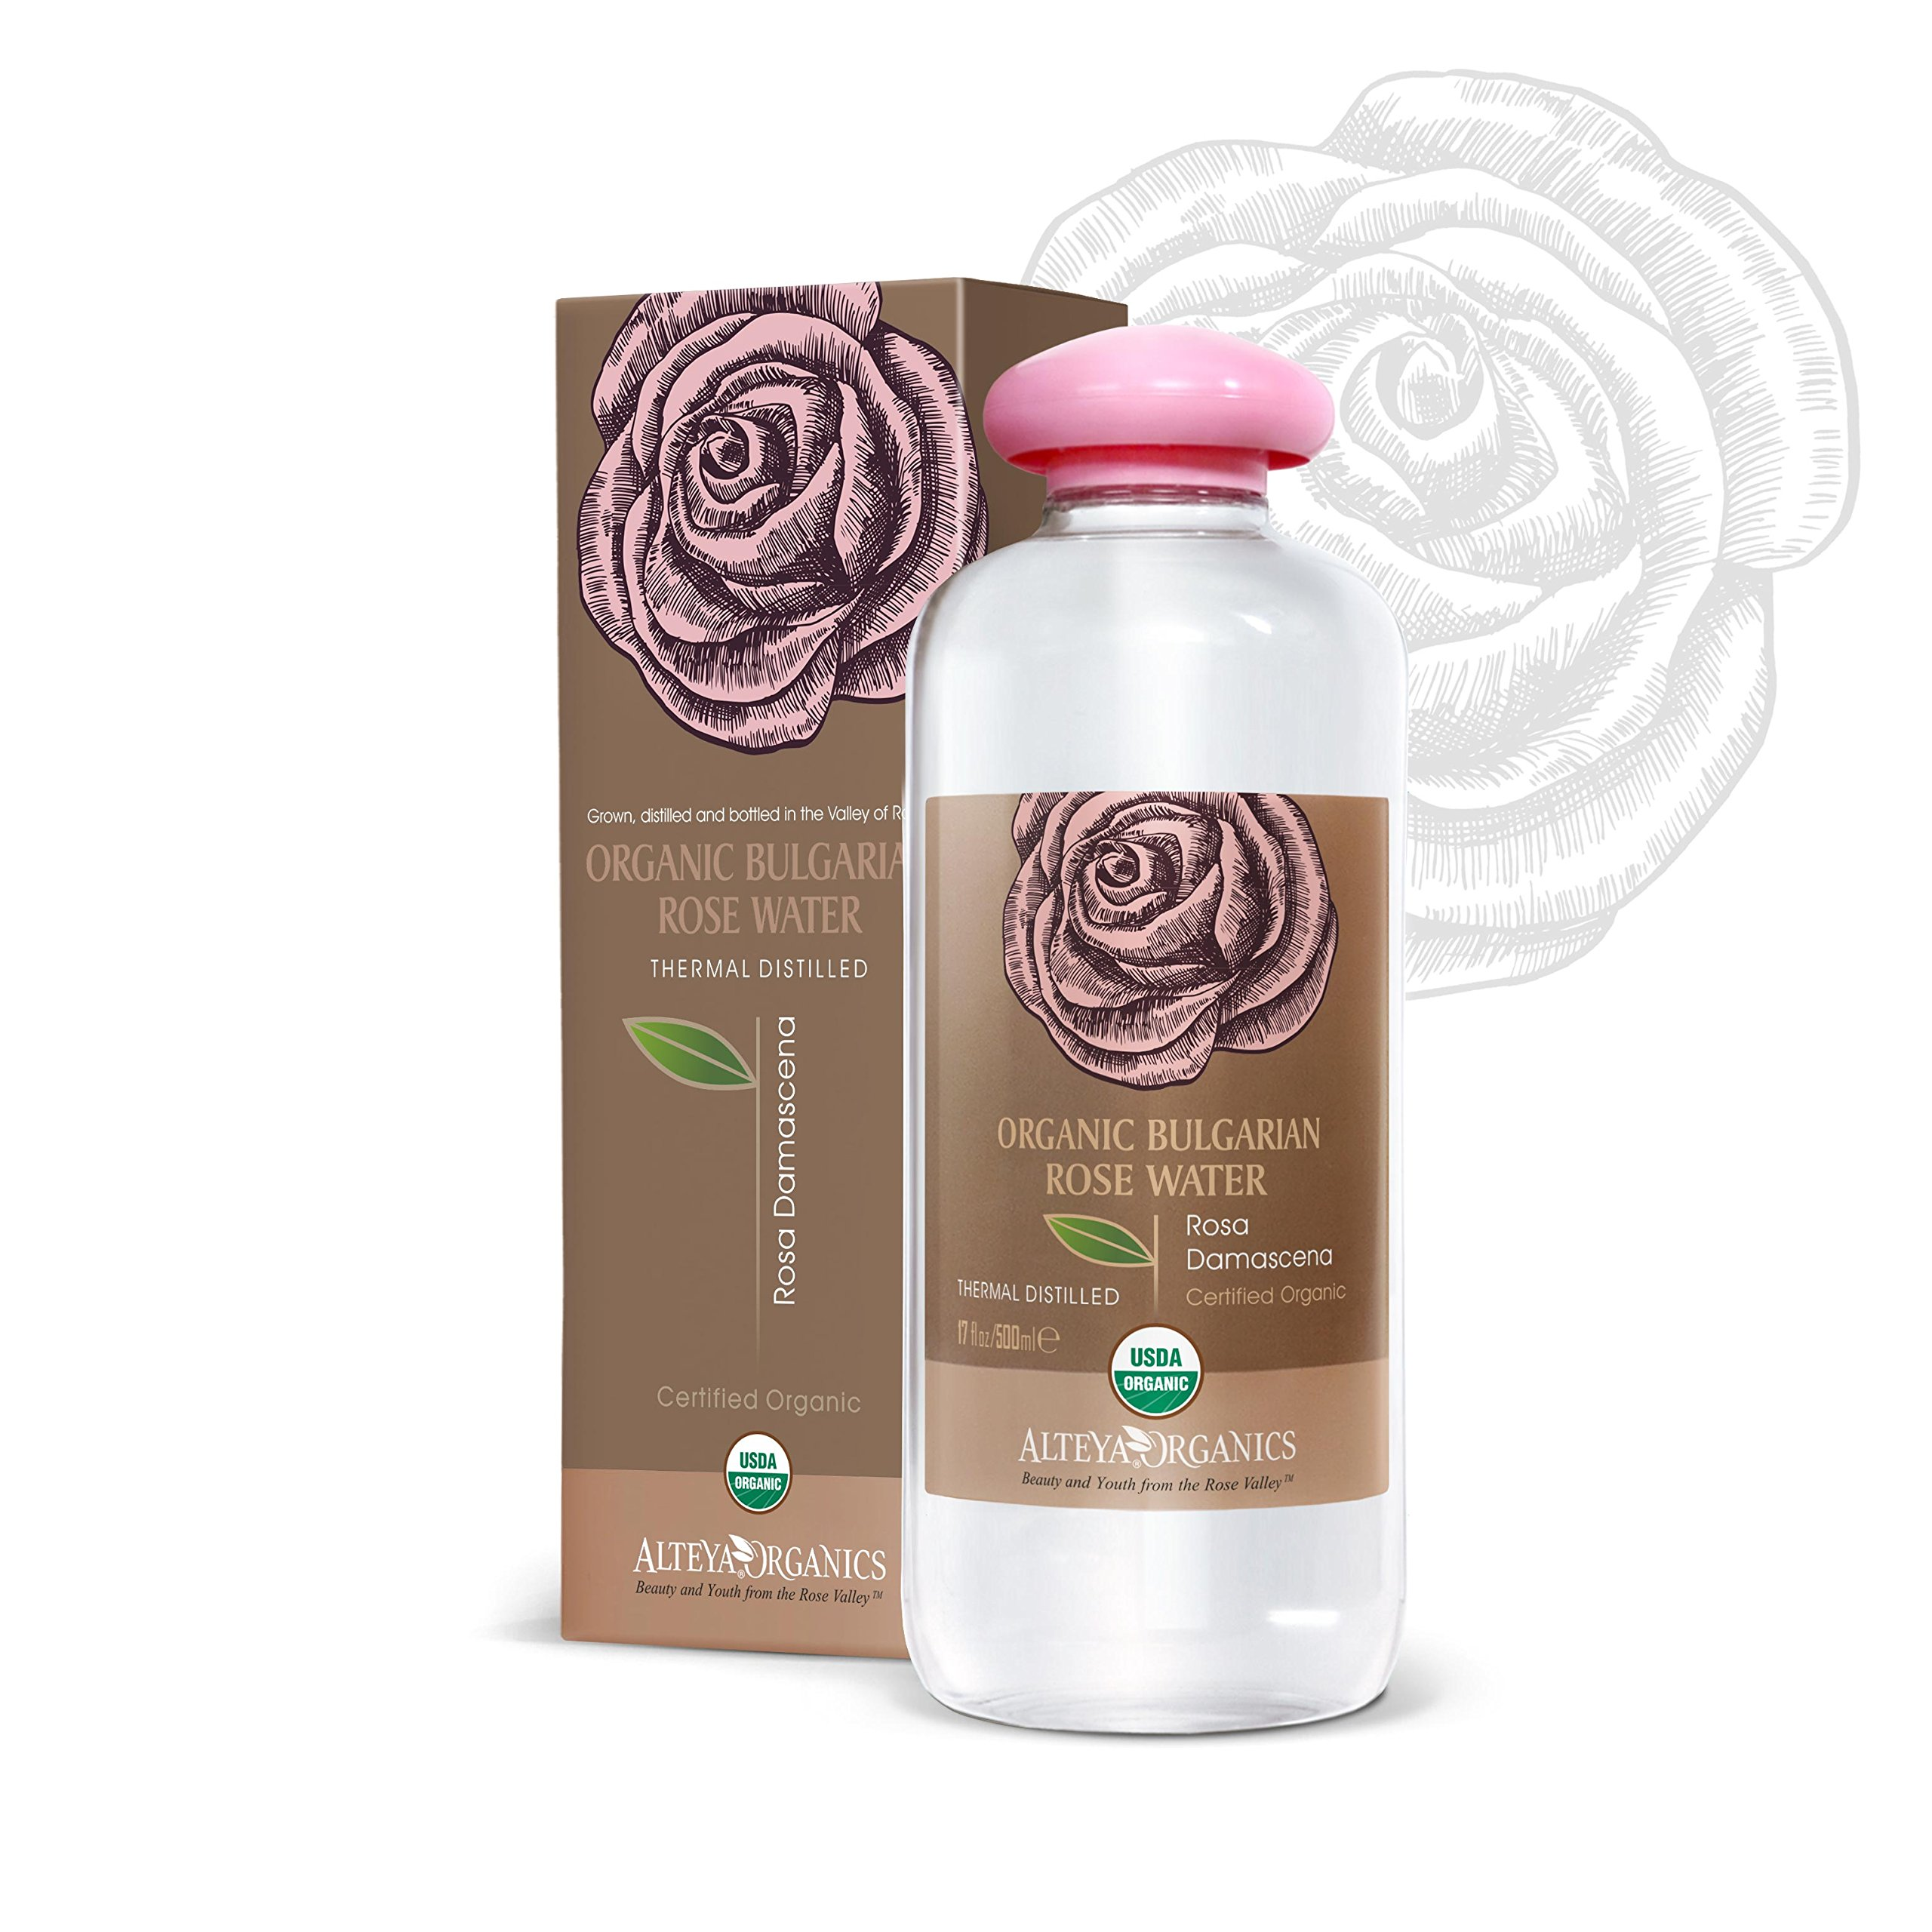 Alteya USDA Organic Bulgarian Rose Water (From New Rose Harvest) - EXTRA LARGE, 17fl oz/500ml, 100% Pure, From Alteya's Bulgarian Rose Fields and Distillery …